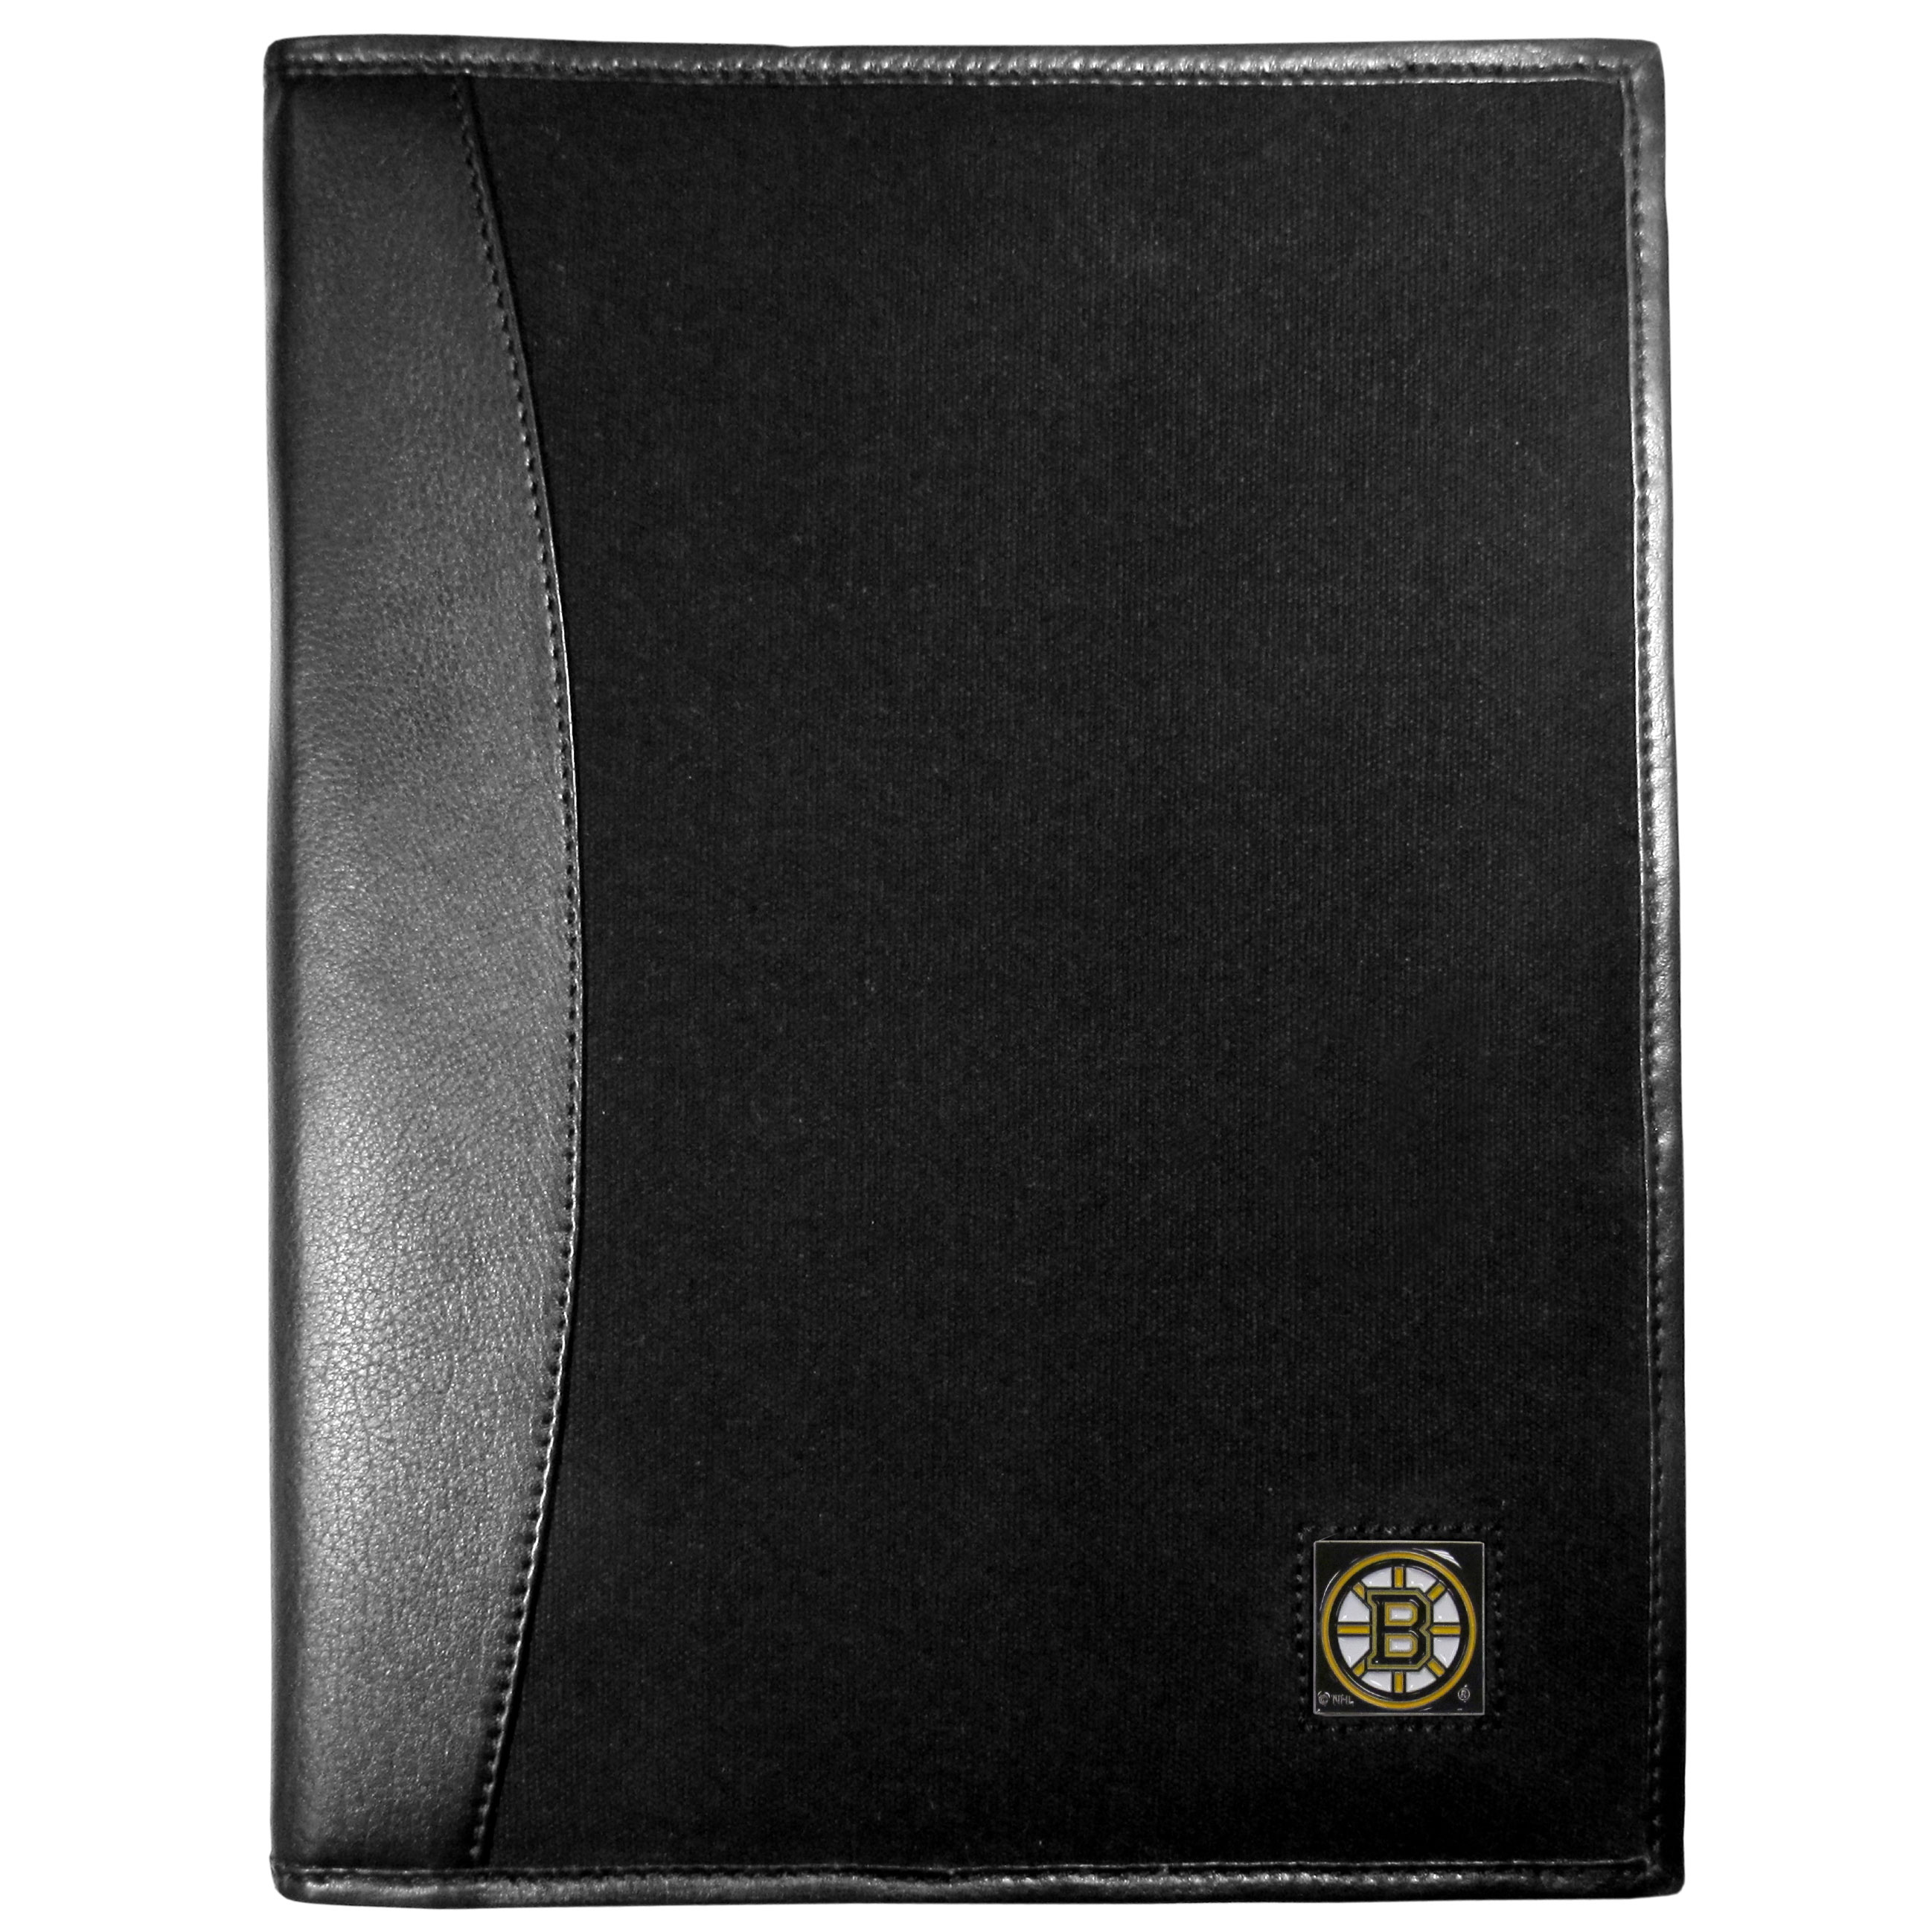 Boston Bruins® Leather and Canvas Padfolio - Our leather and canvas padfolio perfectly blends form and function. The attractive portfolio is bound in fine grain leather with an attractive canvas finish and the interior is a soft nylon. This high quality business accessory also features a fully cast metal Boston Bruins® emblem that is subtly set in the corner of the organizer. It is packed with features like 6 card slots for badges, business cards, hotel keys or credit cards and ID with a large pocket for loose papers and a writing tablet slot making it a must-have for the professional on the go.